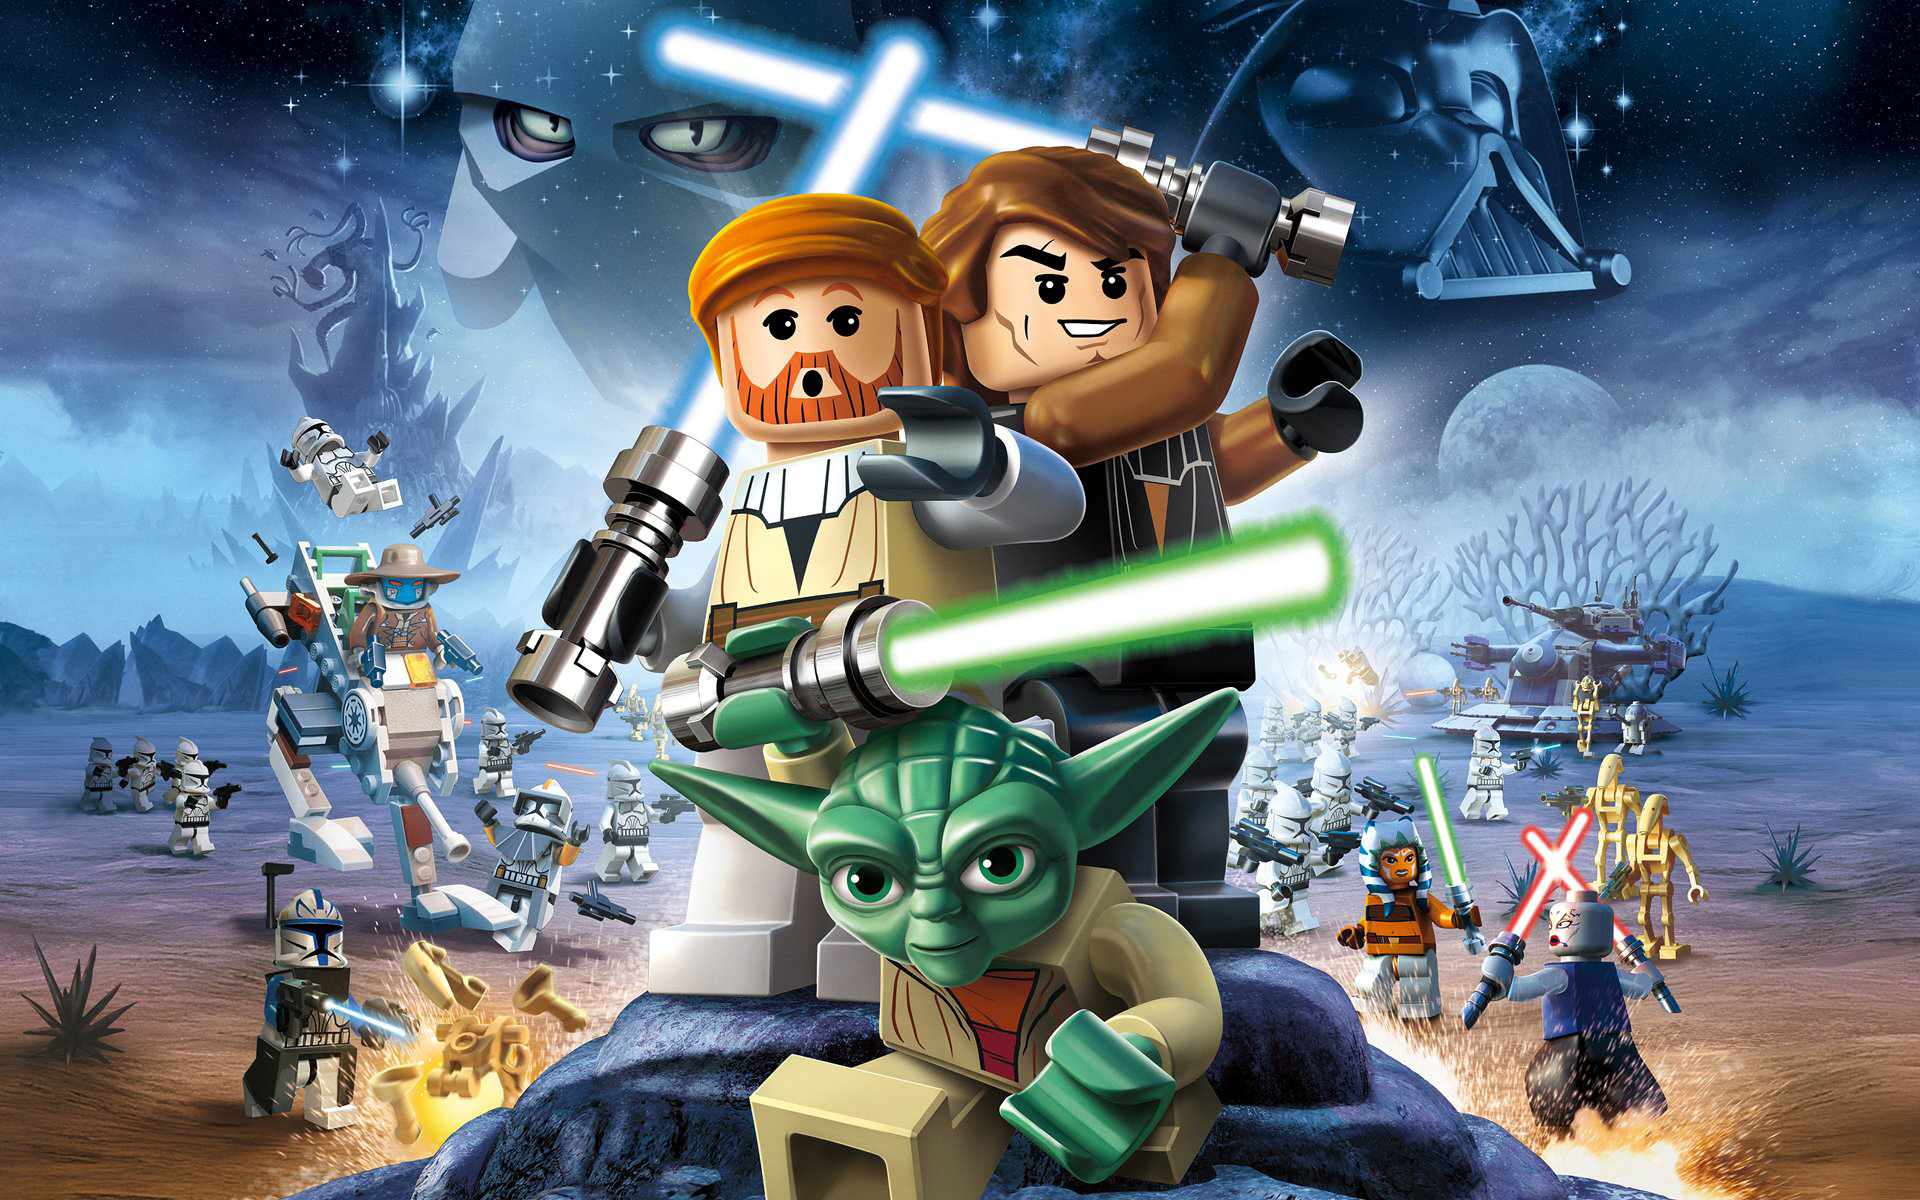 Uk Retailers Expect Star Wars And Lego To Dominate This Christmas